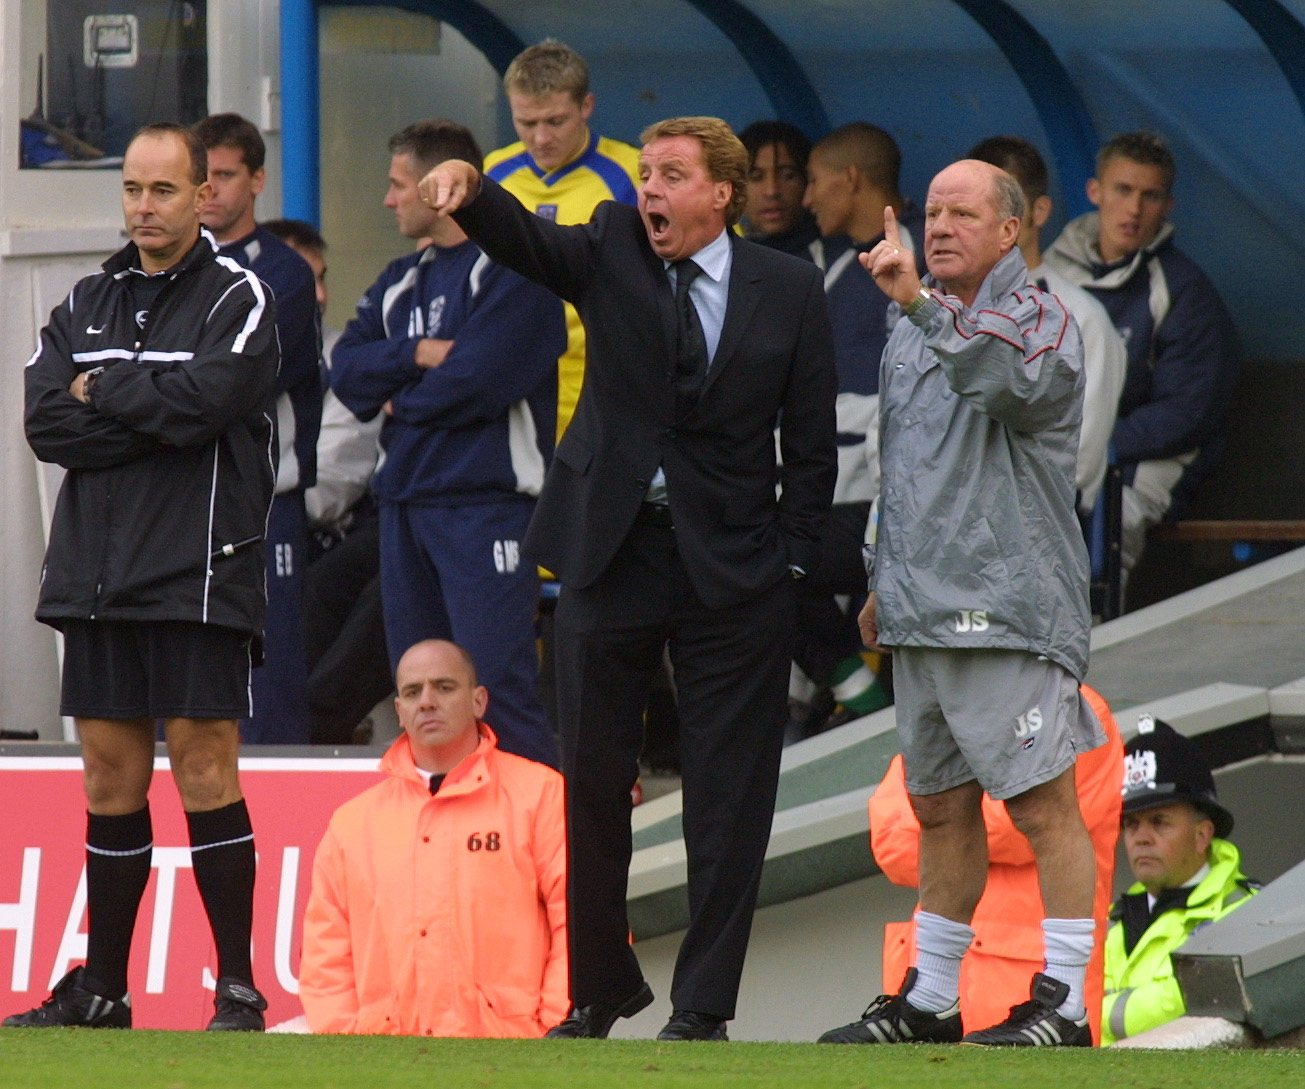 Portsmouth manager Harry Redknapp [C] and Assistant manager Jim Smith (R) shout orders from the touchline